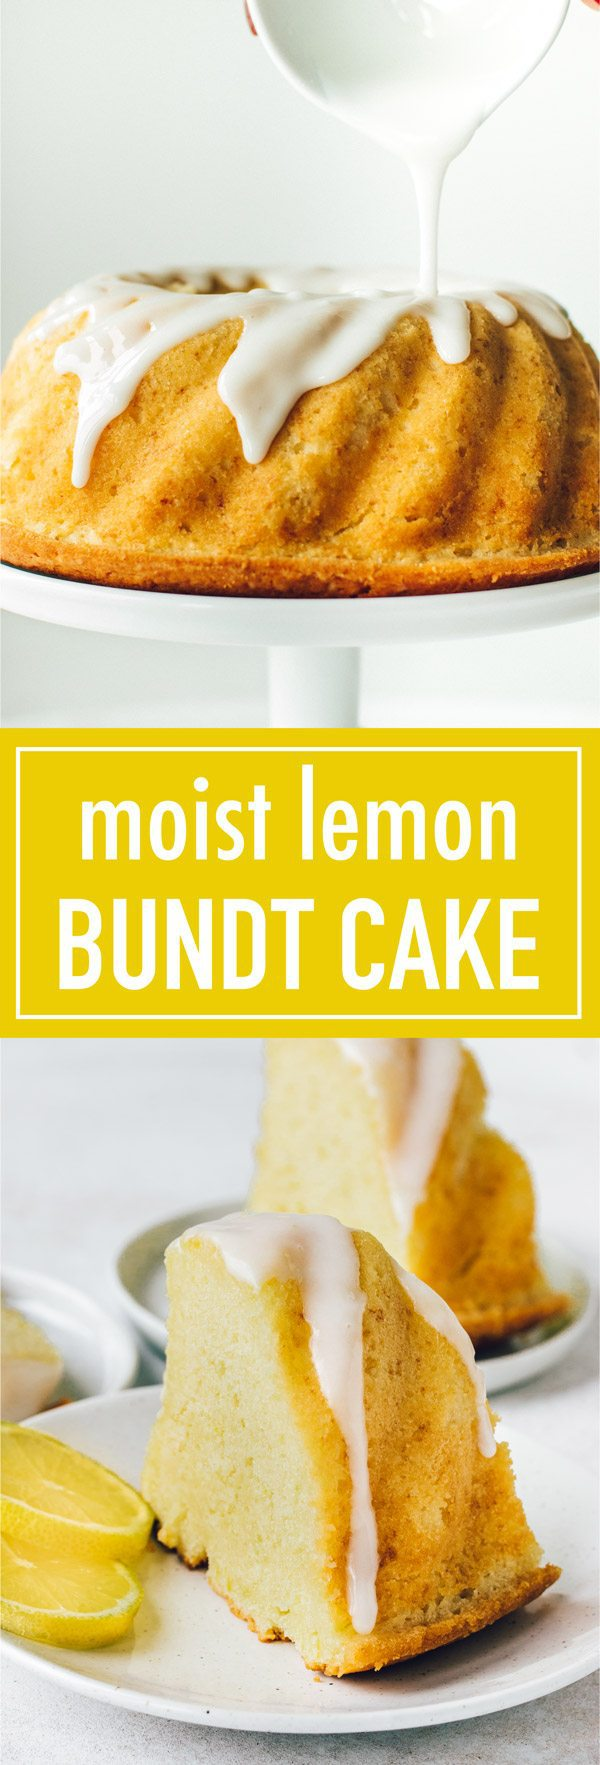 The best lemon bundt cake recipe, moist, flavorful, super lemony! Perfect as a snack.